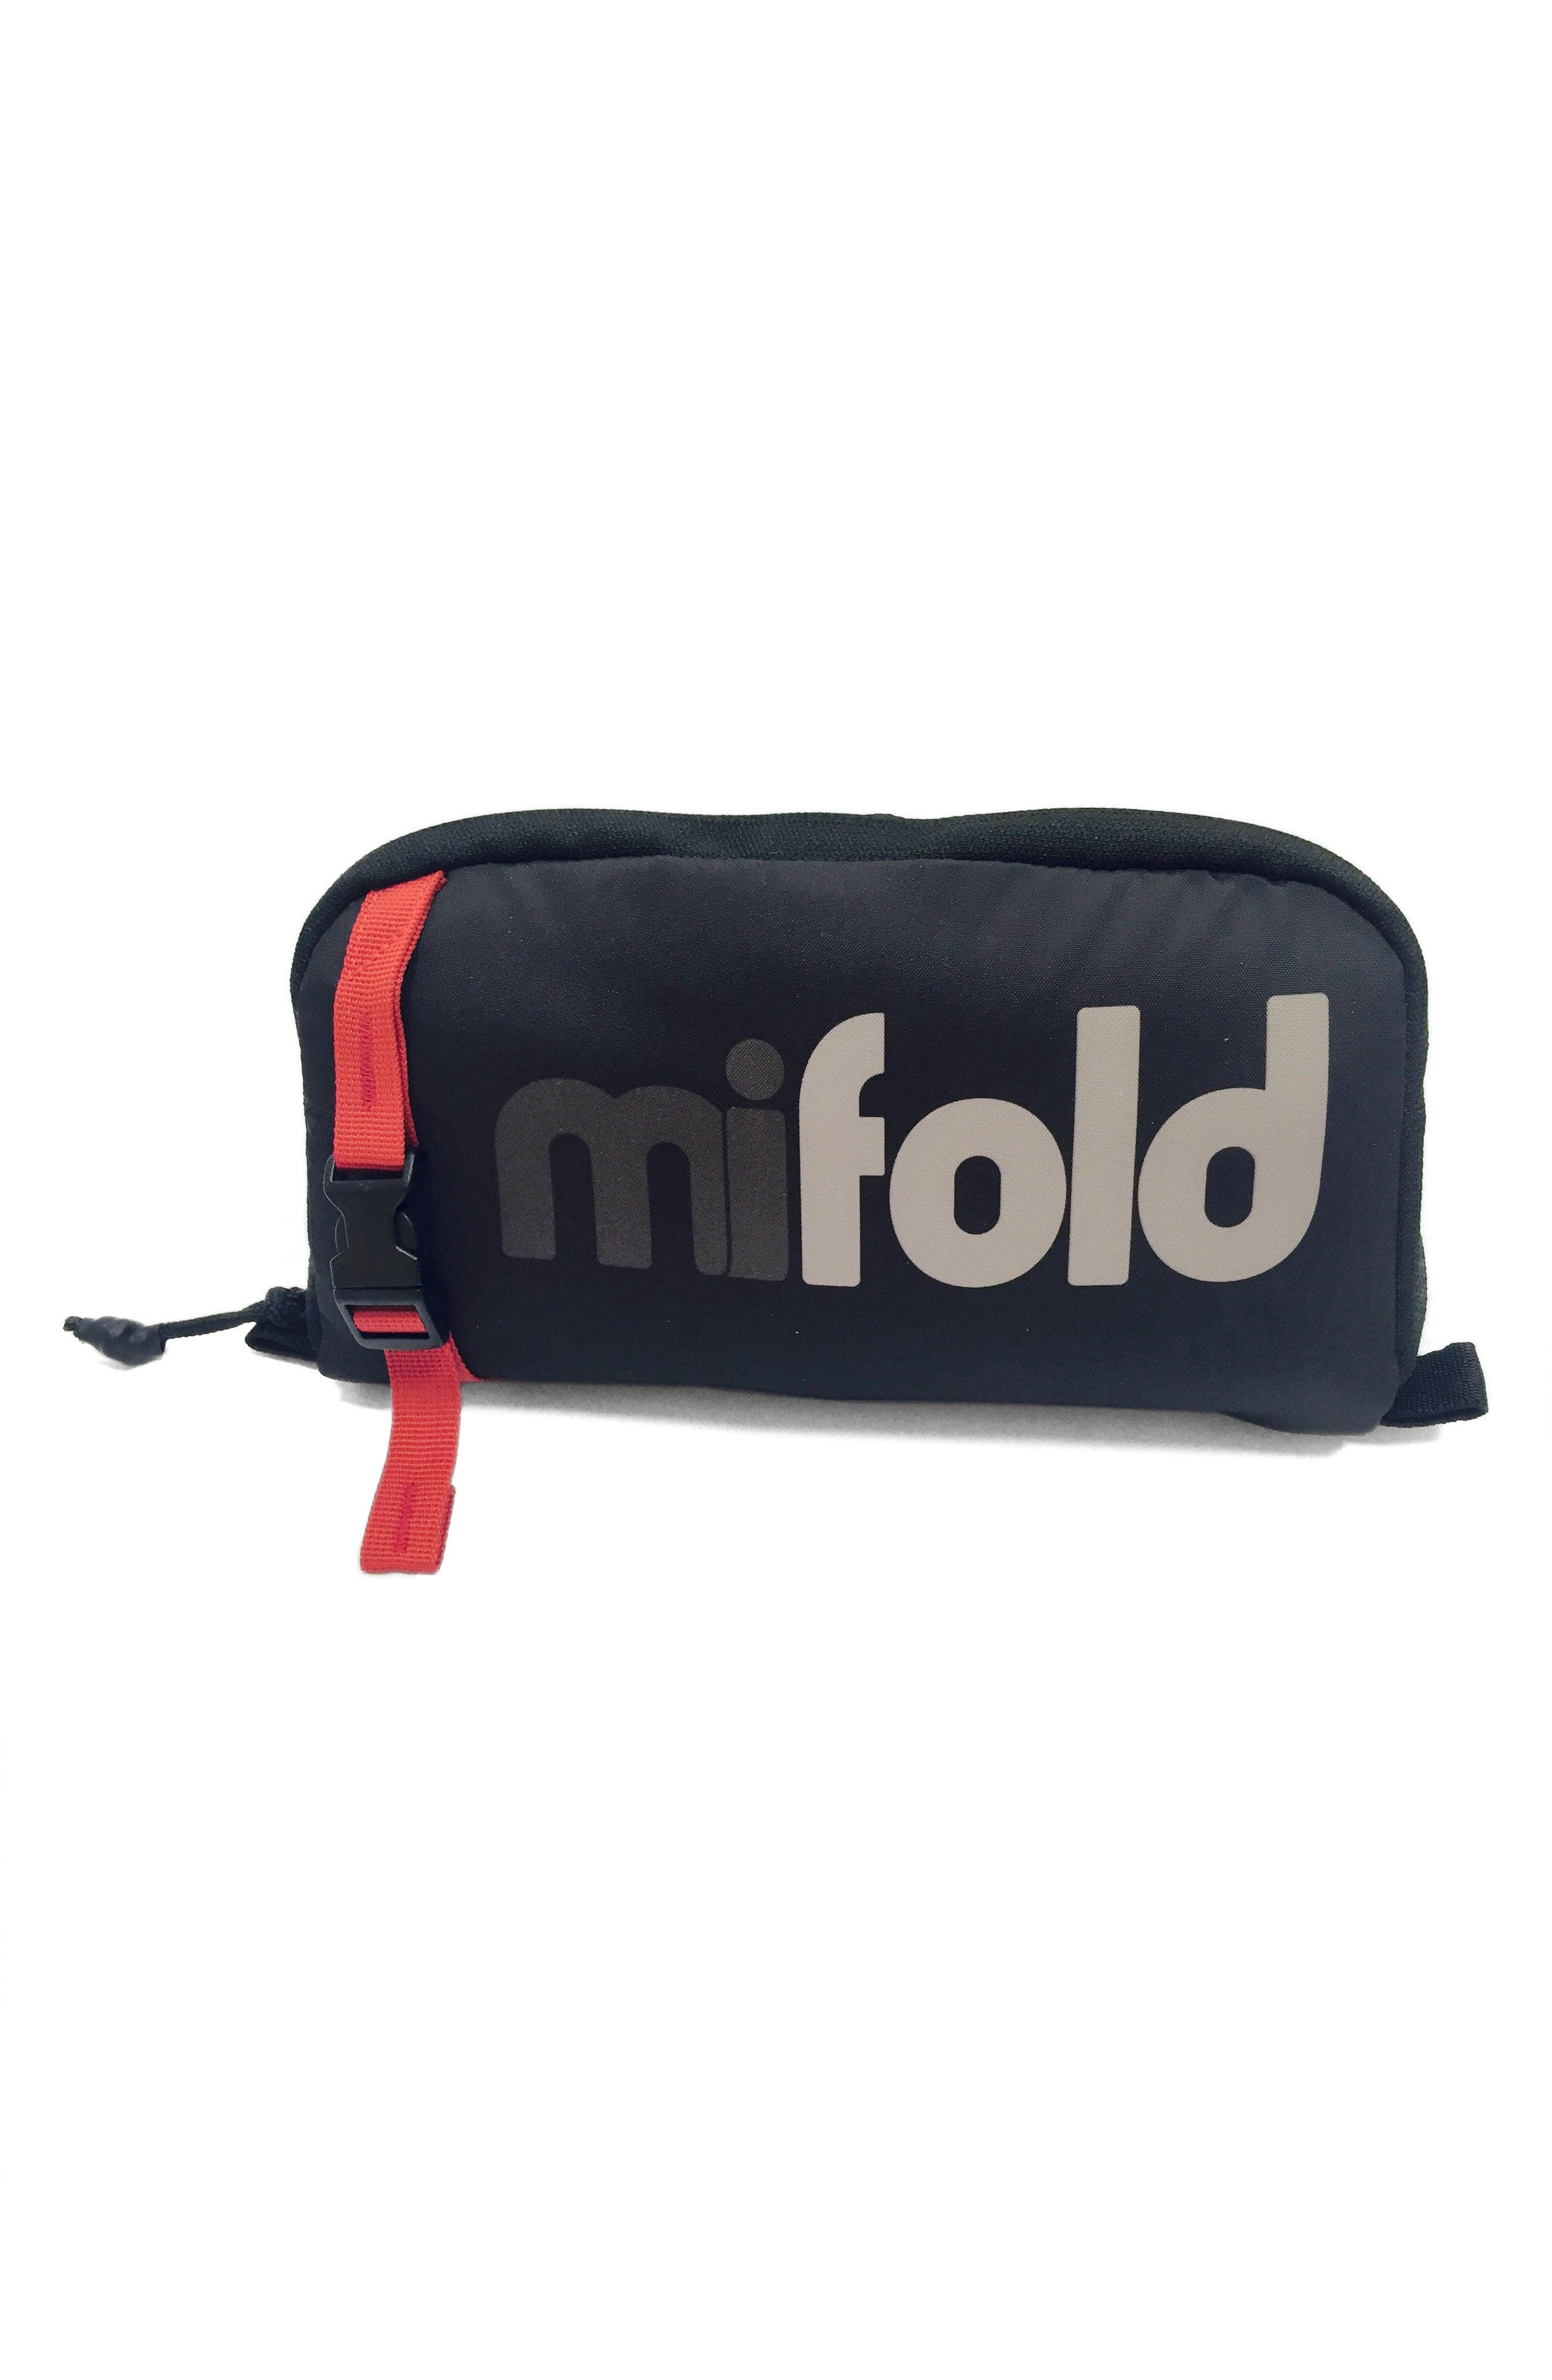 Alternate Image 1 Selected - Mifold Designer Carry Bag for Mifold Booster Seat